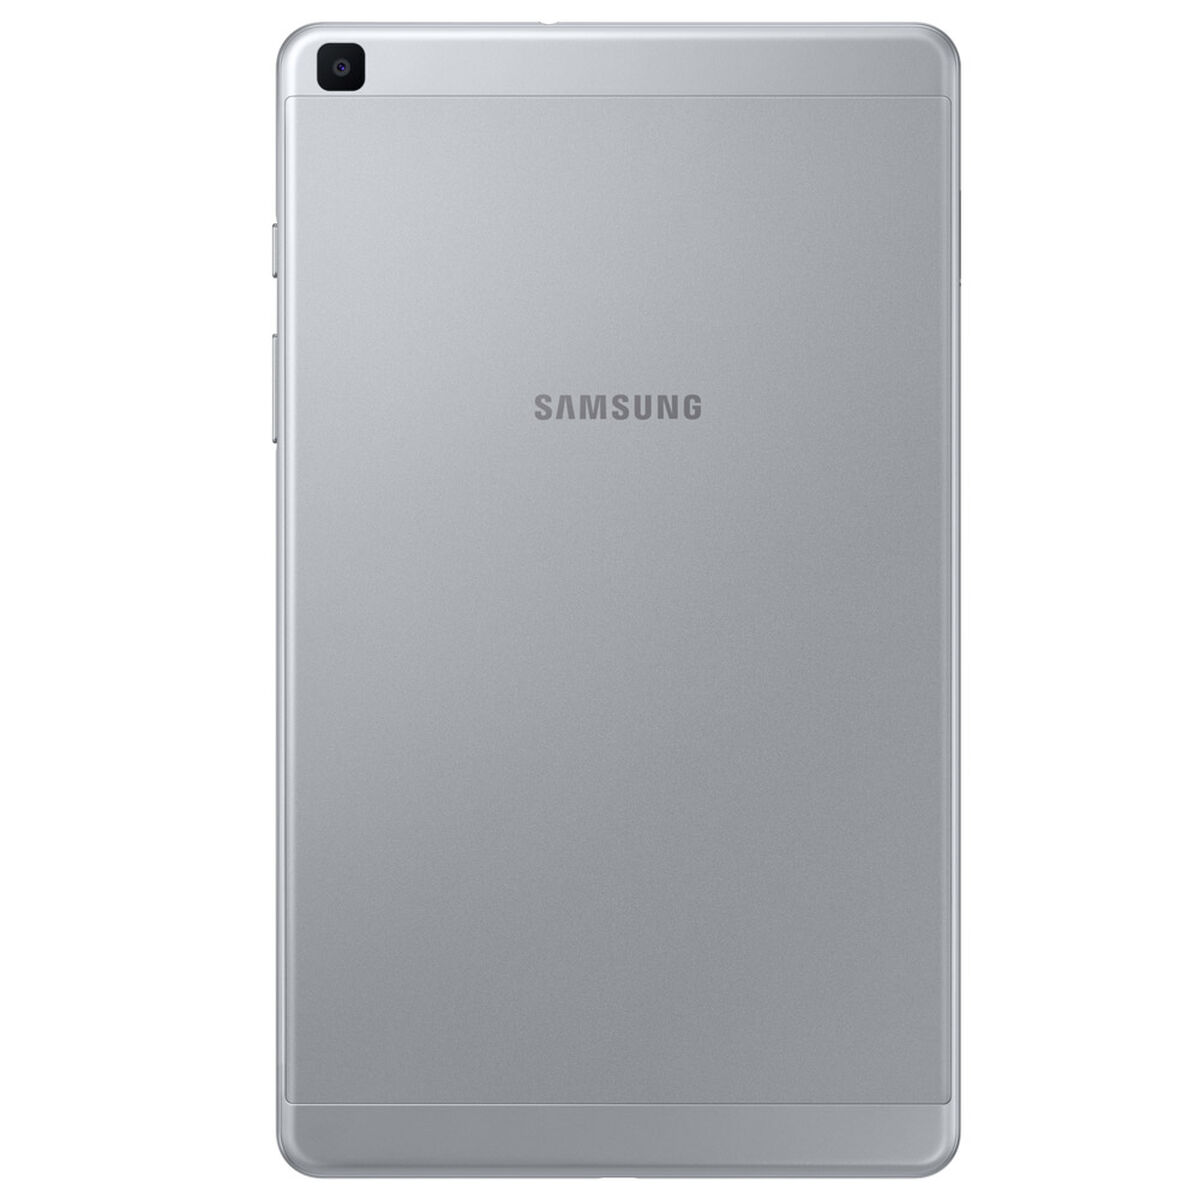 "Tablet Samsung T295 4G LTE Quad Core 2GB 32GB 8"" Gris"